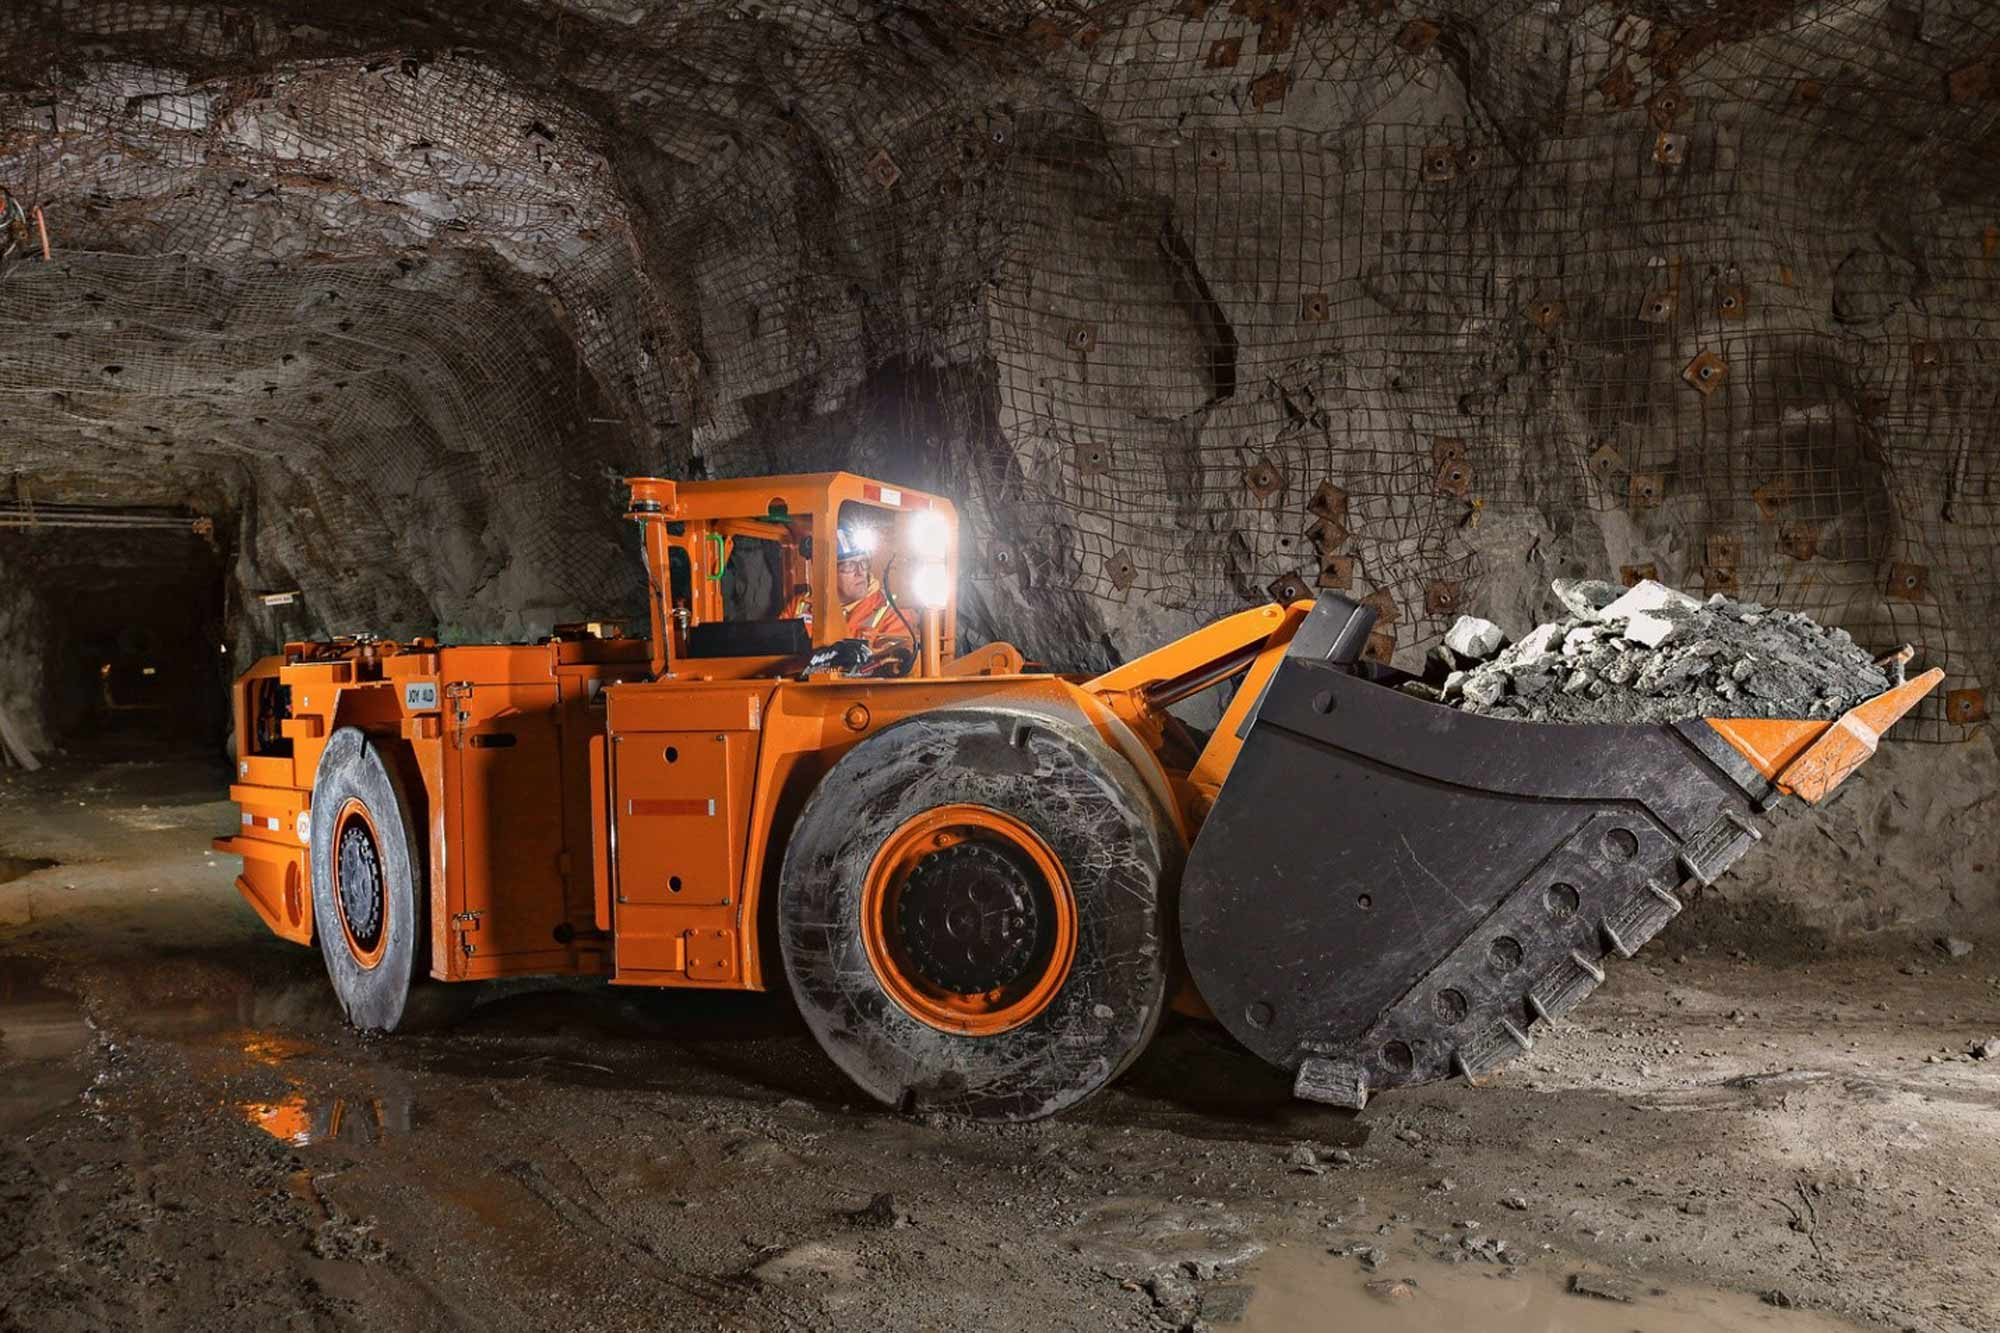 How to select equipment for underground mining